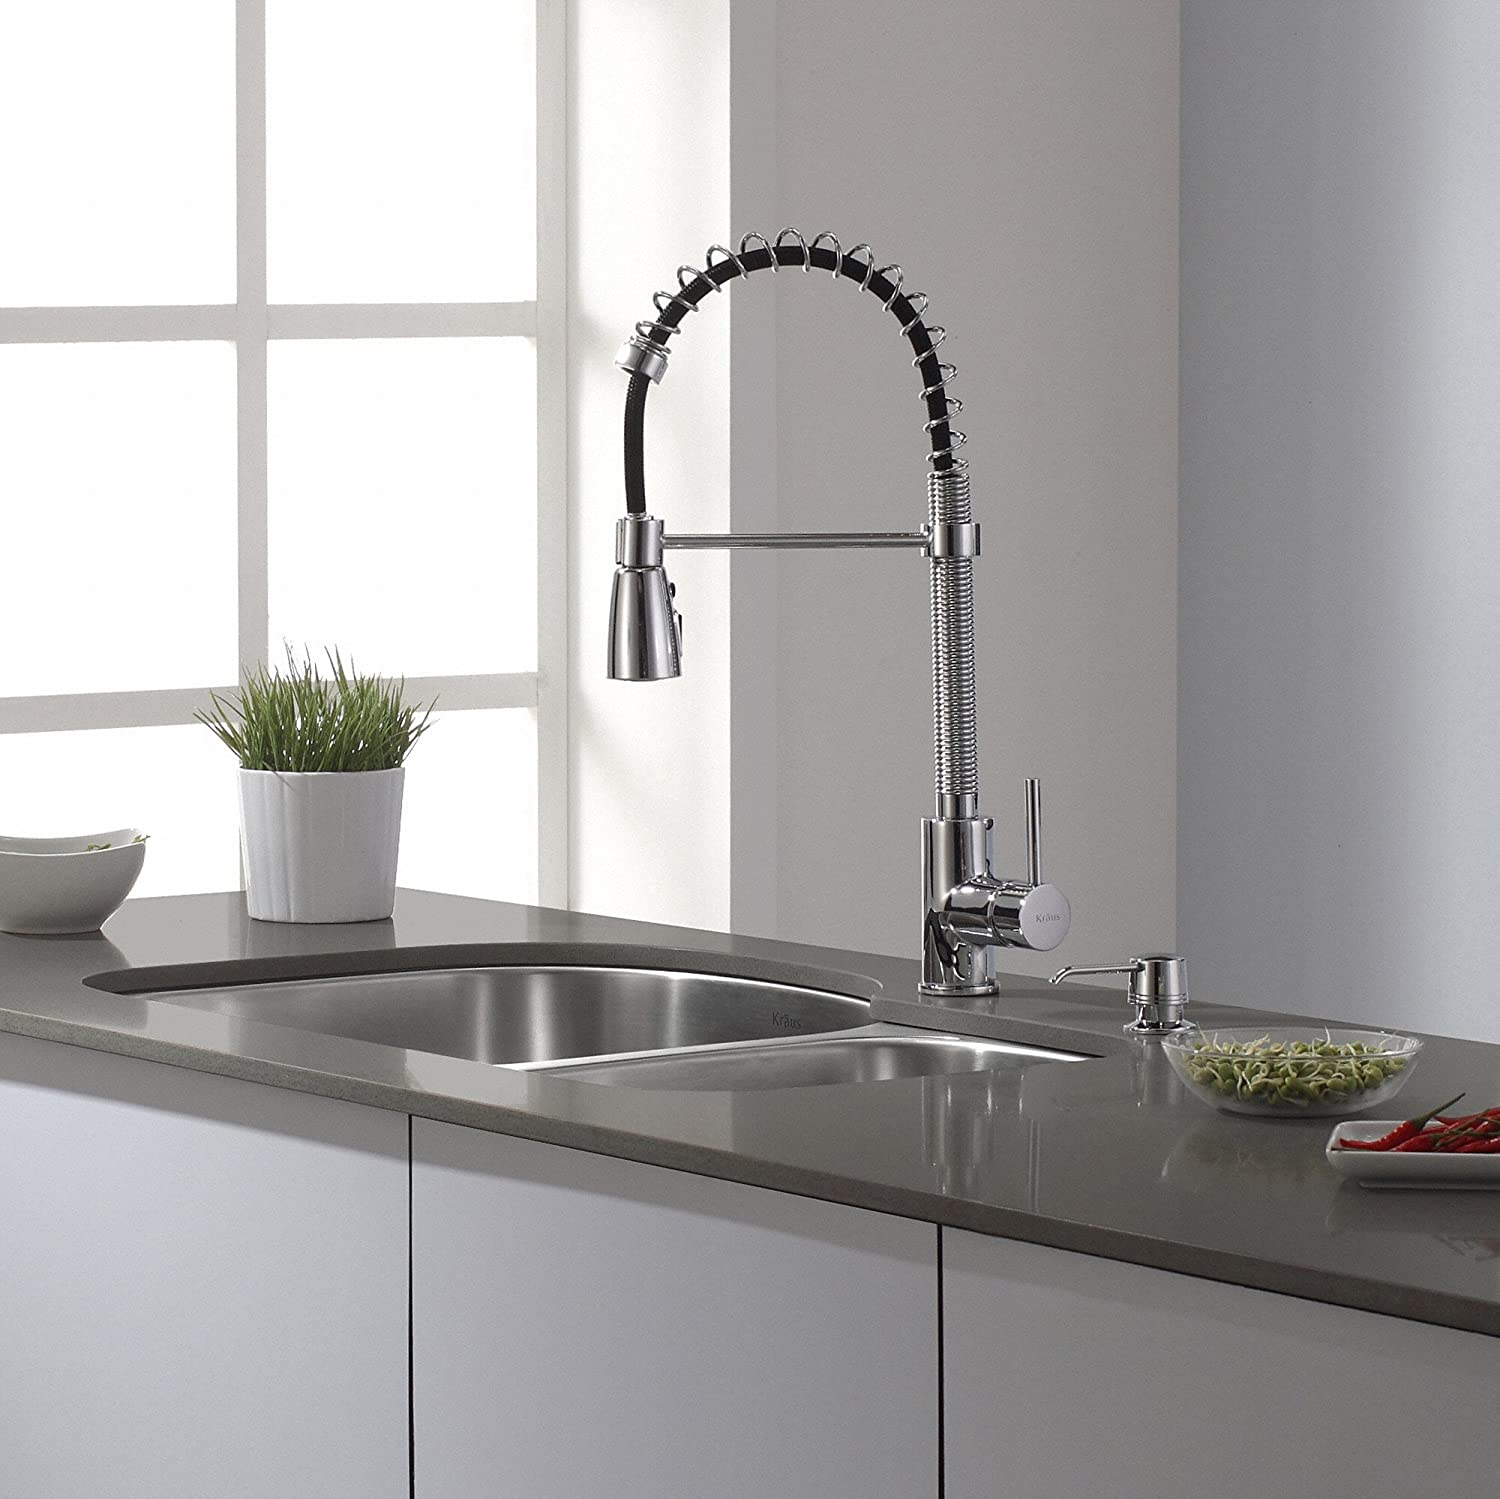 kitchen faucets com impressive xplrvr kraususa fixtures faucet and